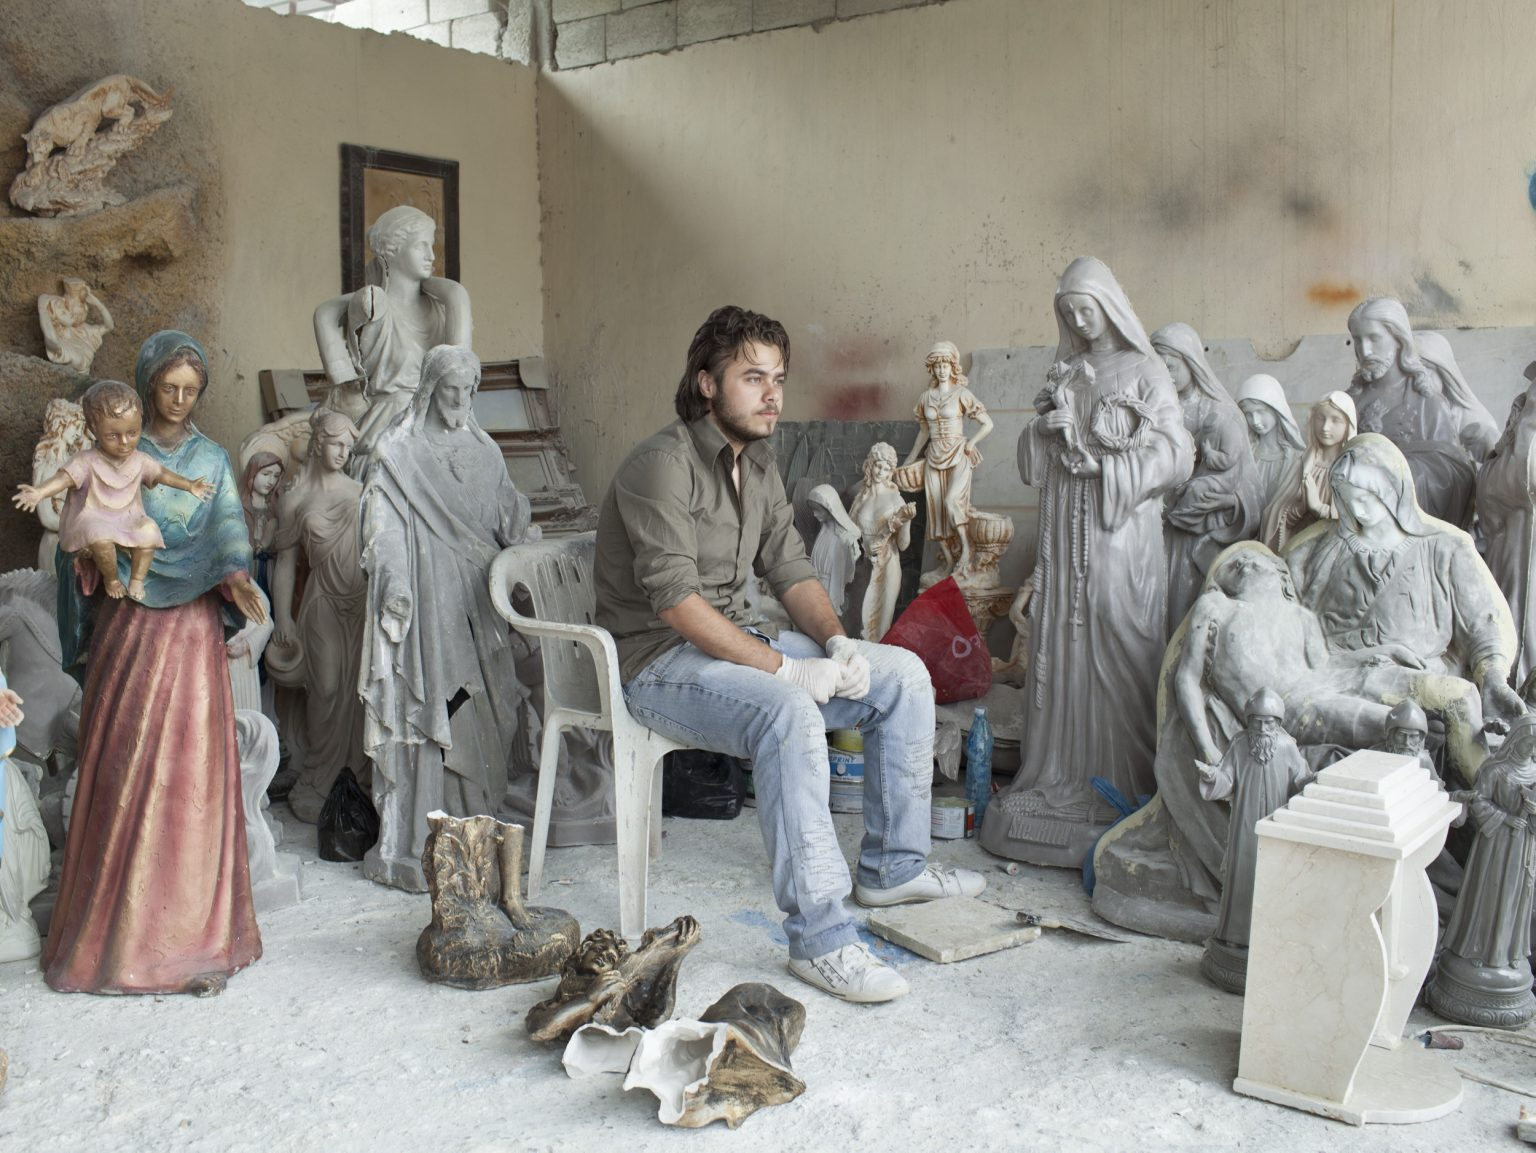 A Christian Syrian refugee is working in a relogous statue shop in Chikka, on the way to Kadisha Valley.